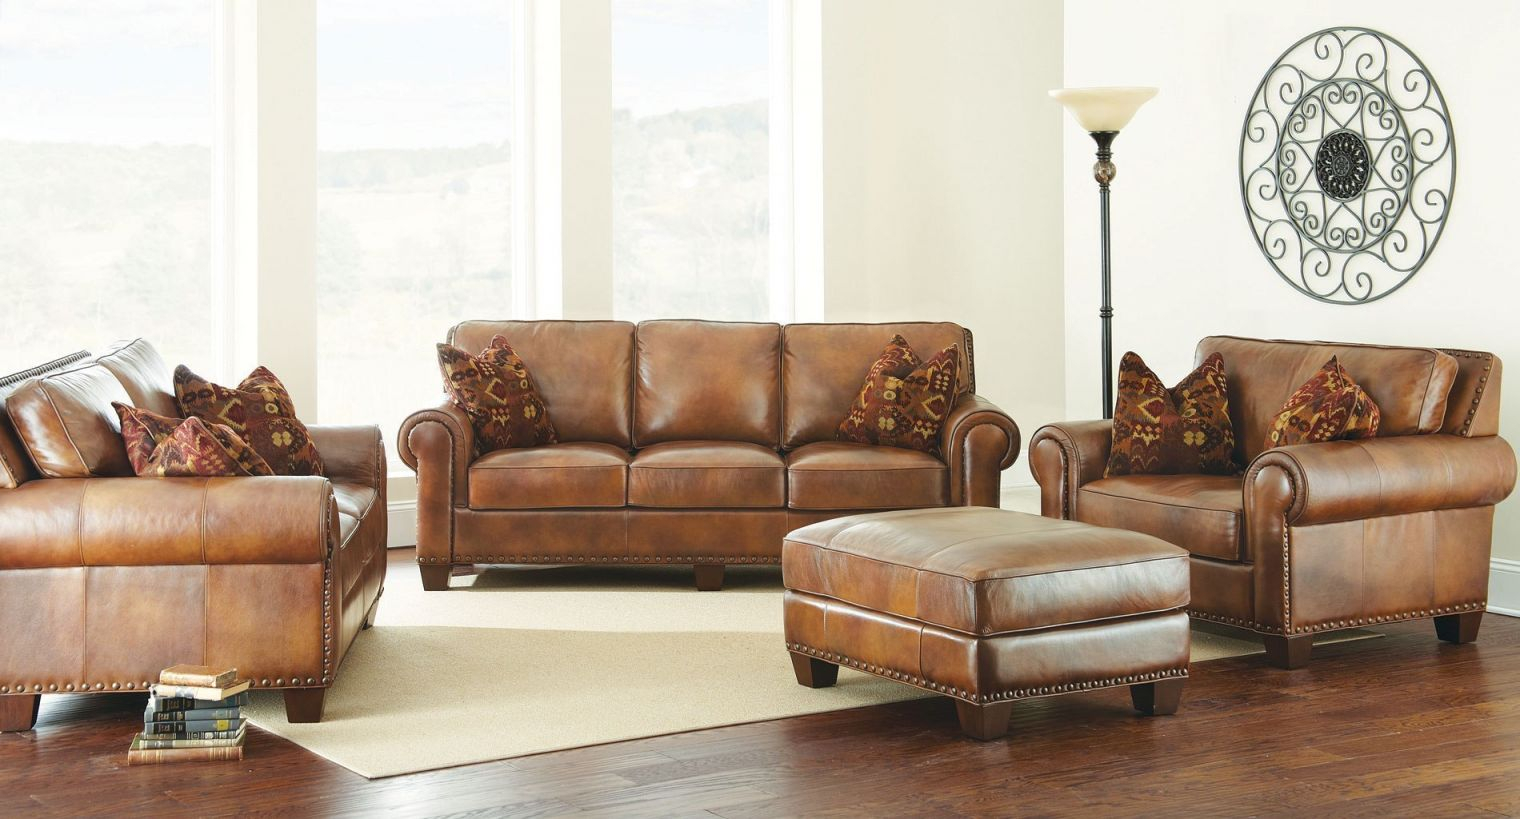 Silverado Leather Living Room Set regarding Awesome Leather Living Room Sets